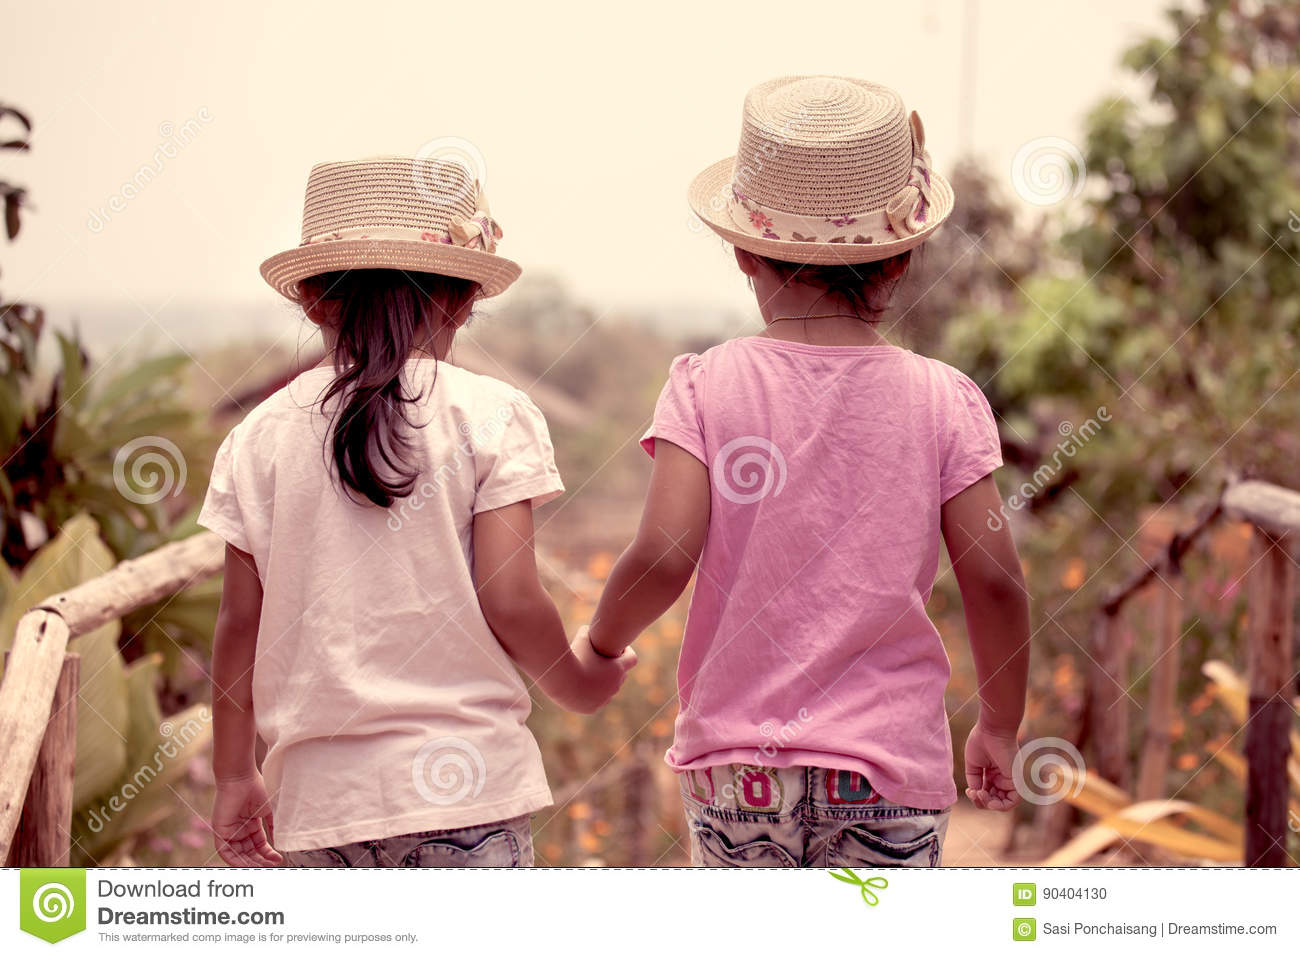 Back view of two little girls holding hand and walking together